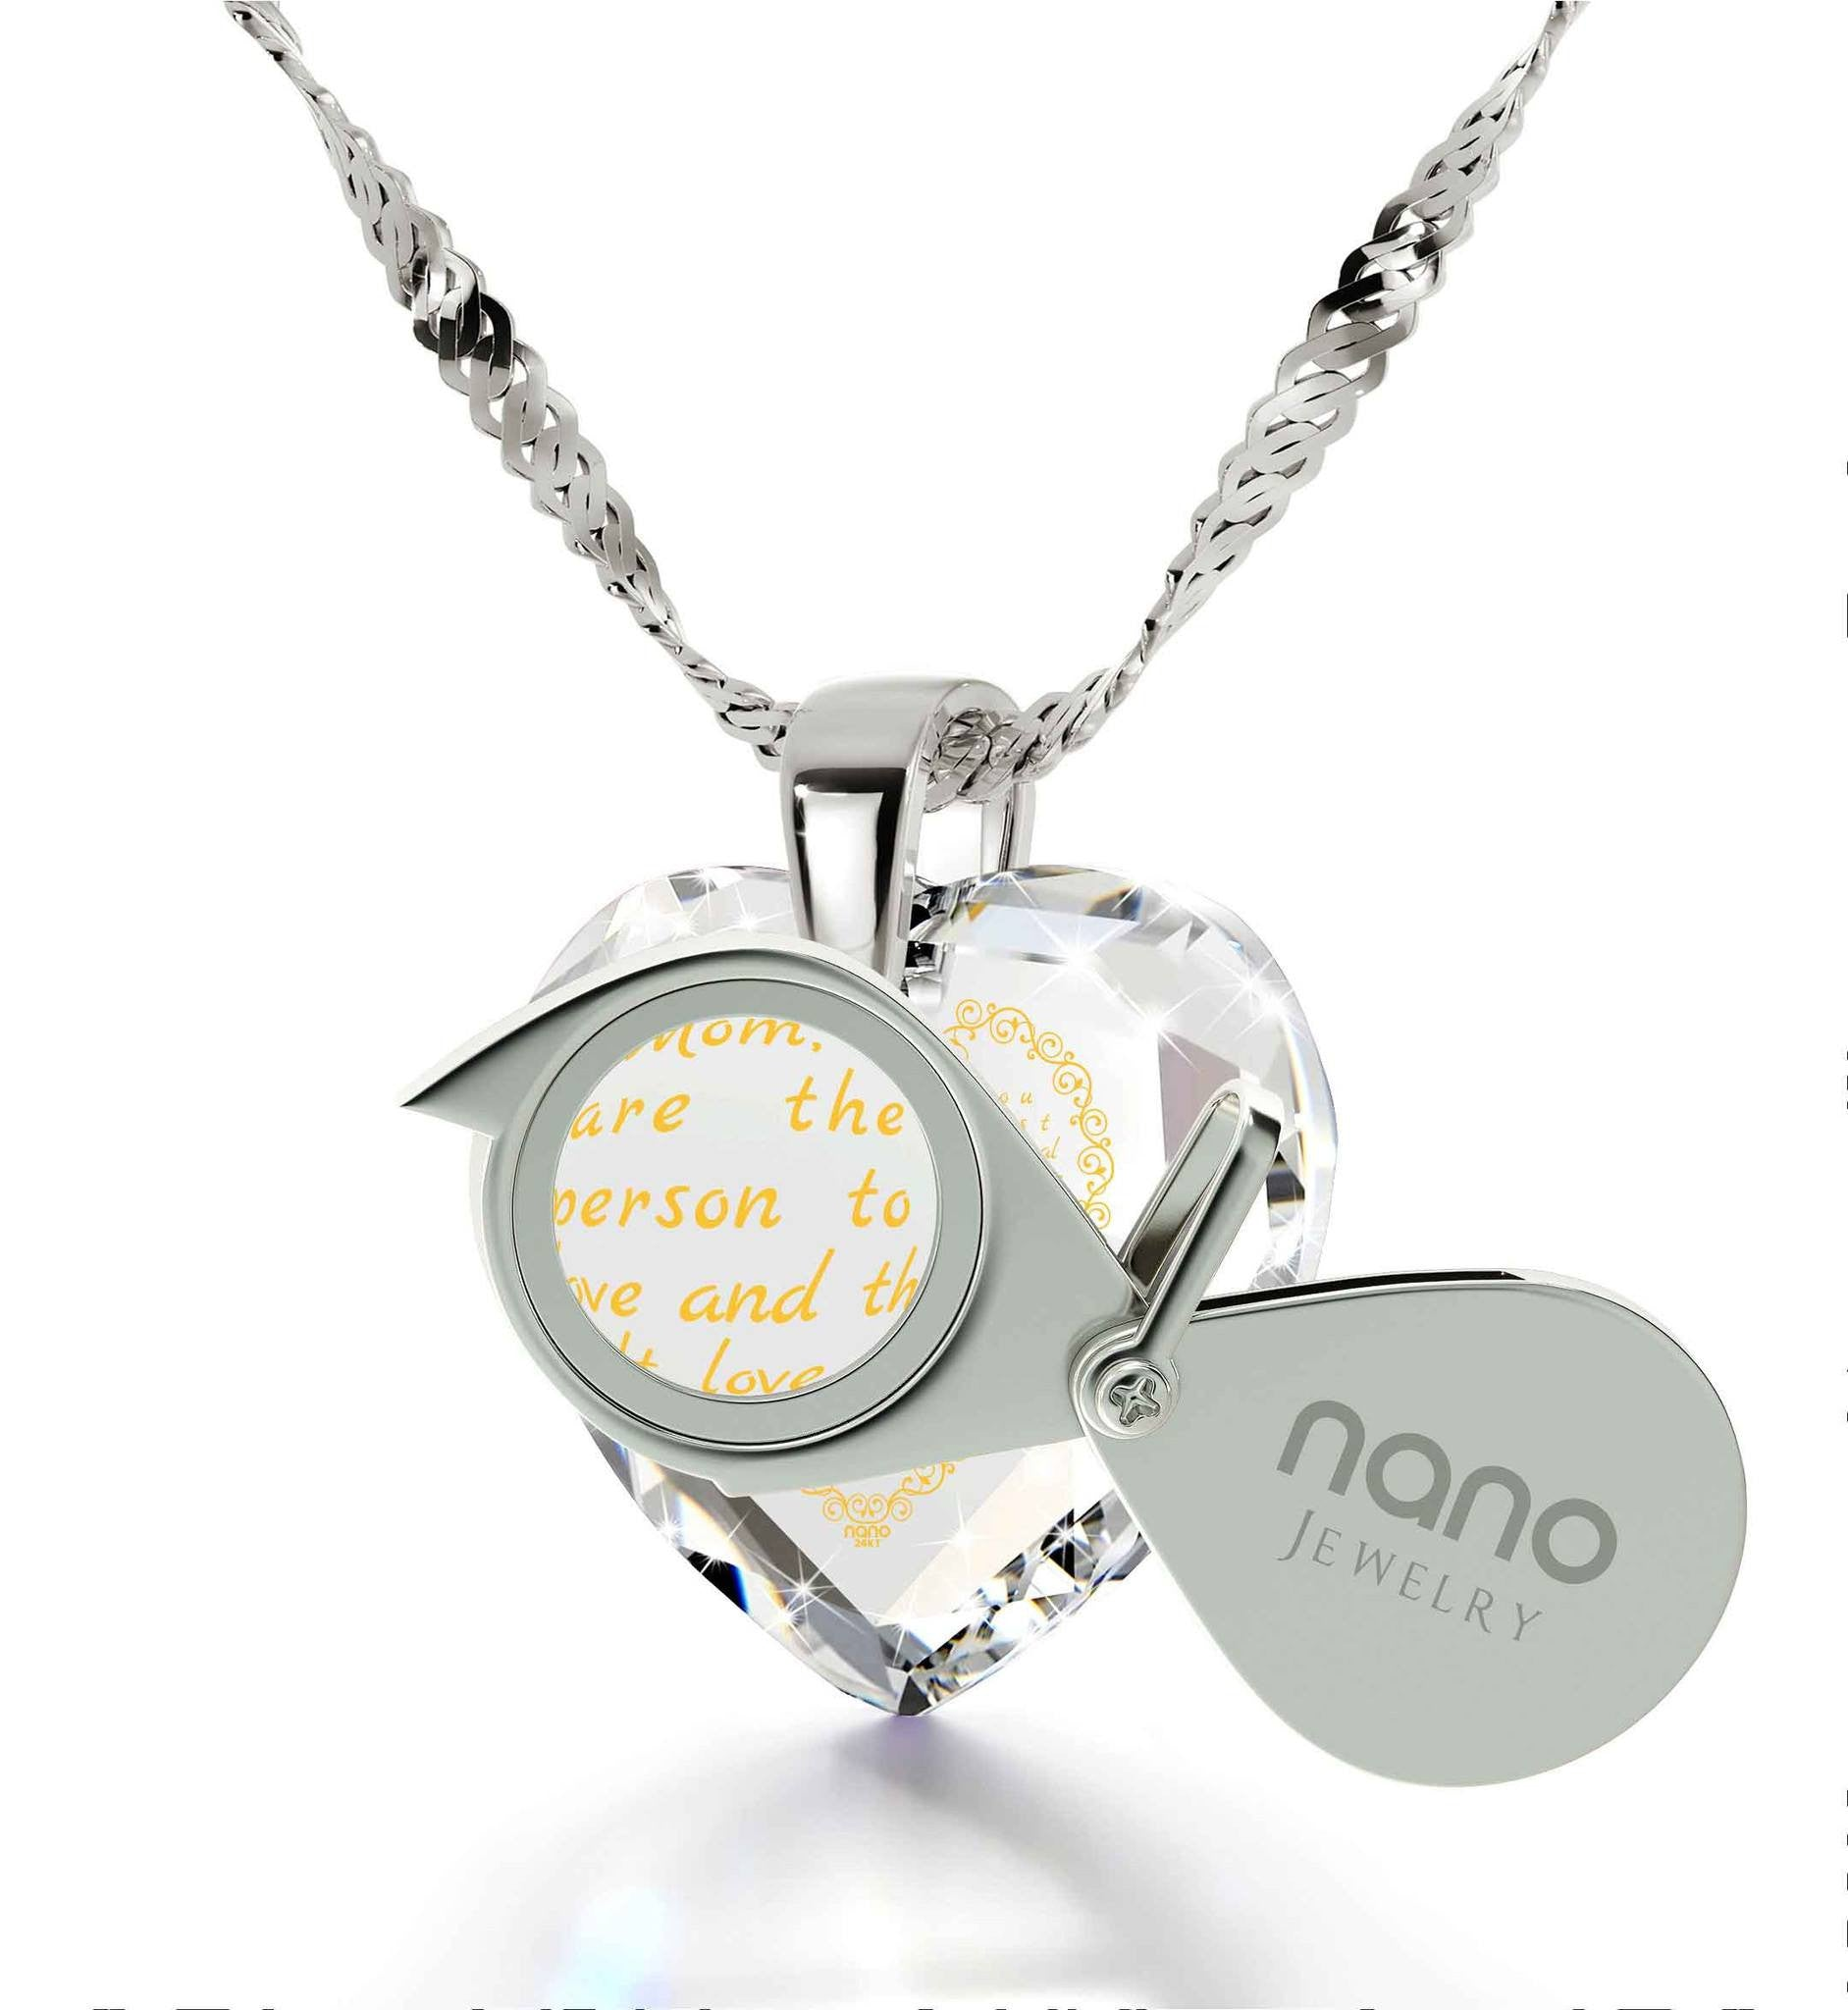 Special Mother's Day Gift, Birthday Presents for Mom, Cubic Zirconia Necklace, Engraved in 24k Gold, by Nano Jewelry